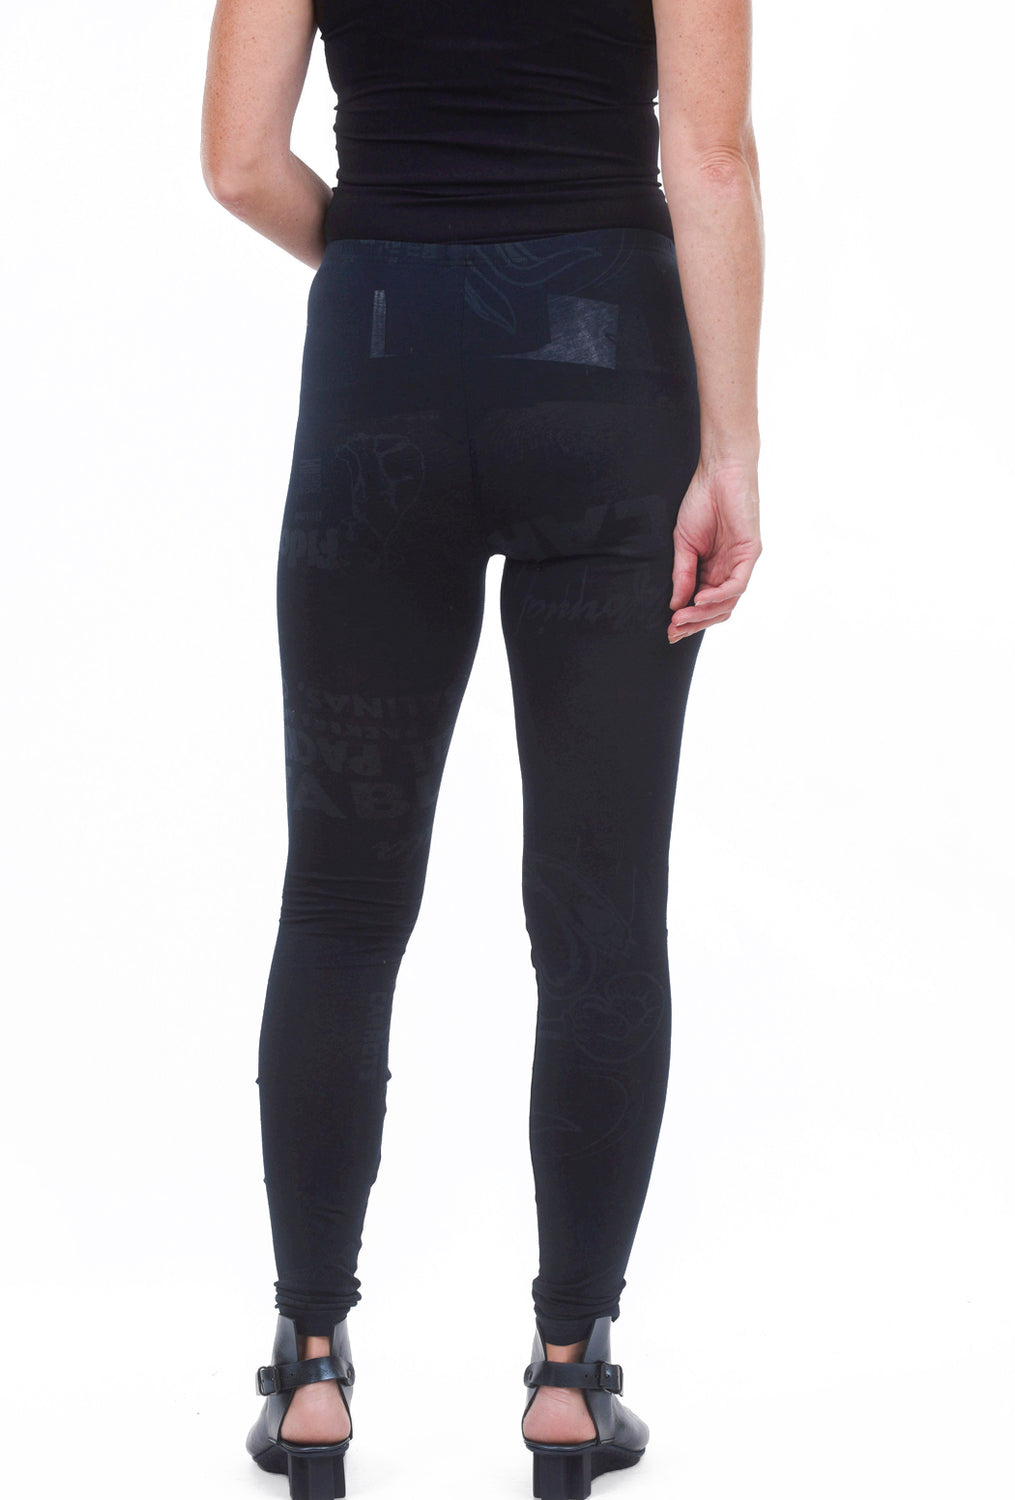 Rundholz Black Label Basic RBL Print Leggings, Petrol